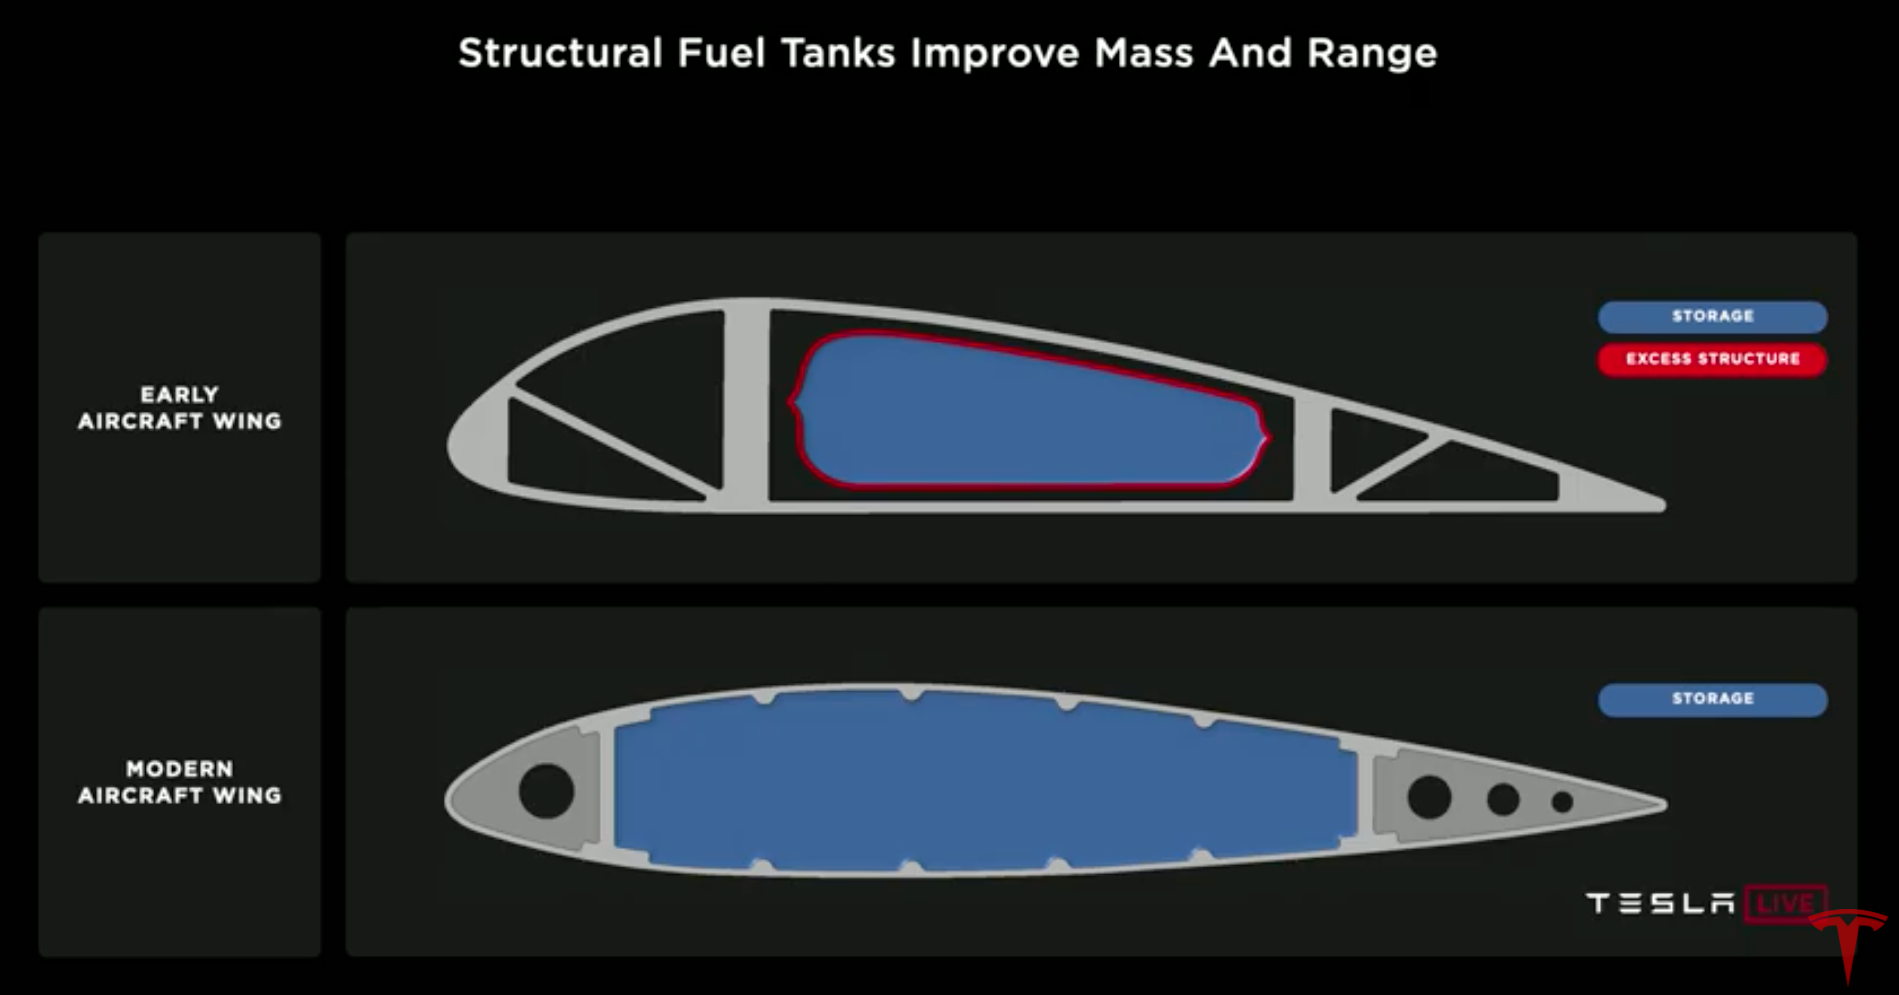 la-Battery-Day-2020-Structural-Fuel-Tanks-Aircraft.png